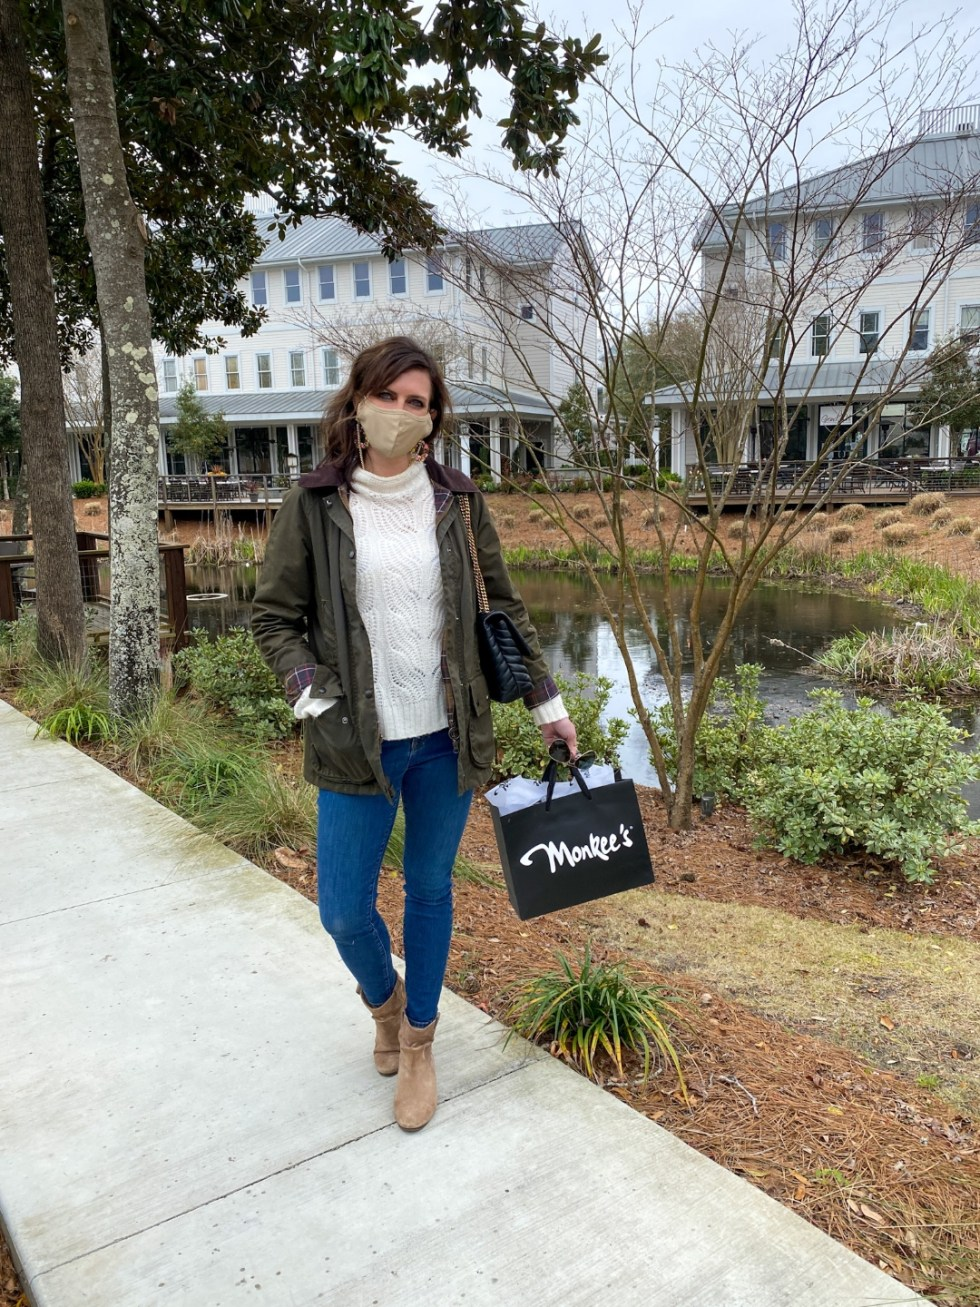 A Spring Weekend in Wilmington, NC: the Best Things to Do - I'm Fixin' To - @imfixintoblog |Weekend in Wilmington by popular NC travel blog, I'm Fixin' To: image of a woman standing in Airlie Garden and holding a Monkee's bag.